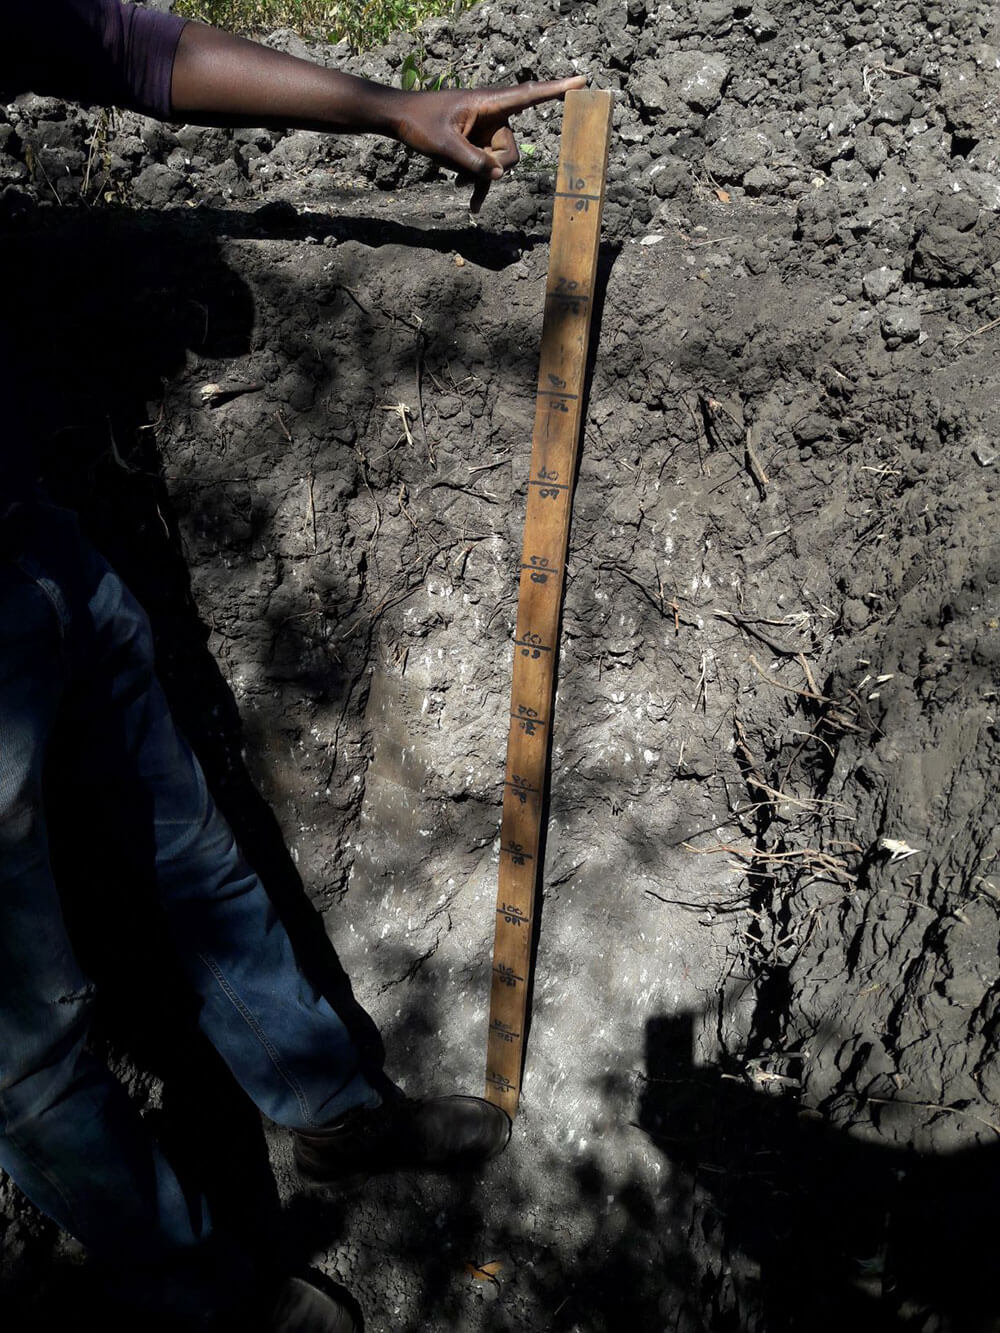 Hand holding measuring stick in a soil pit.